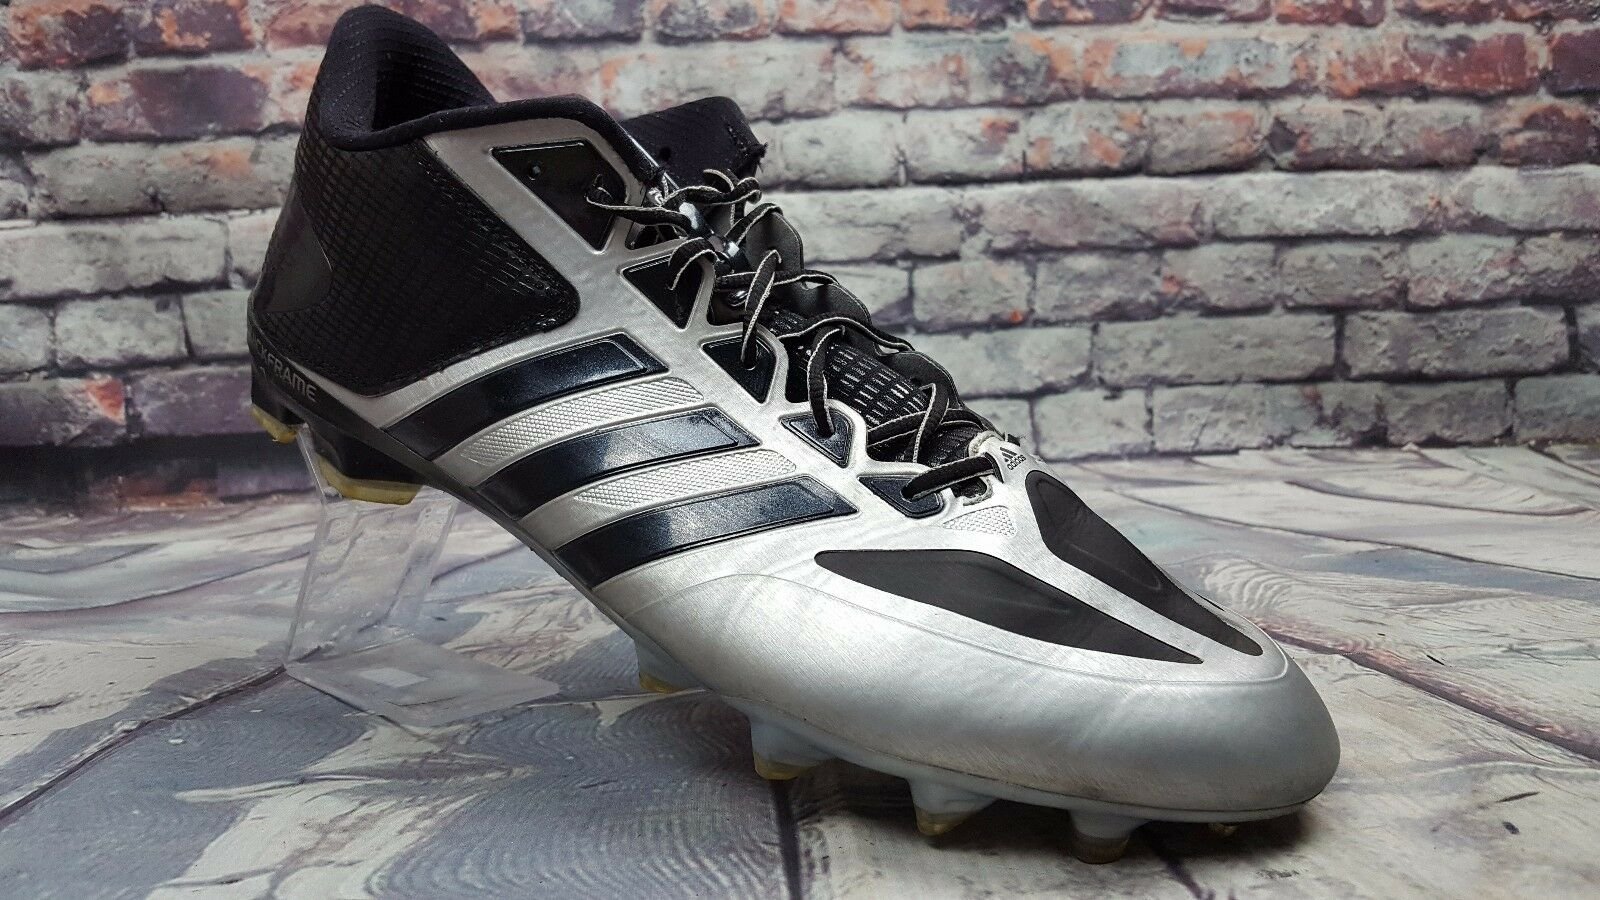 Men's Adidas Quick Frame black /gray football cleats shoes Crazy quick Price reduction best-selling model of the brand